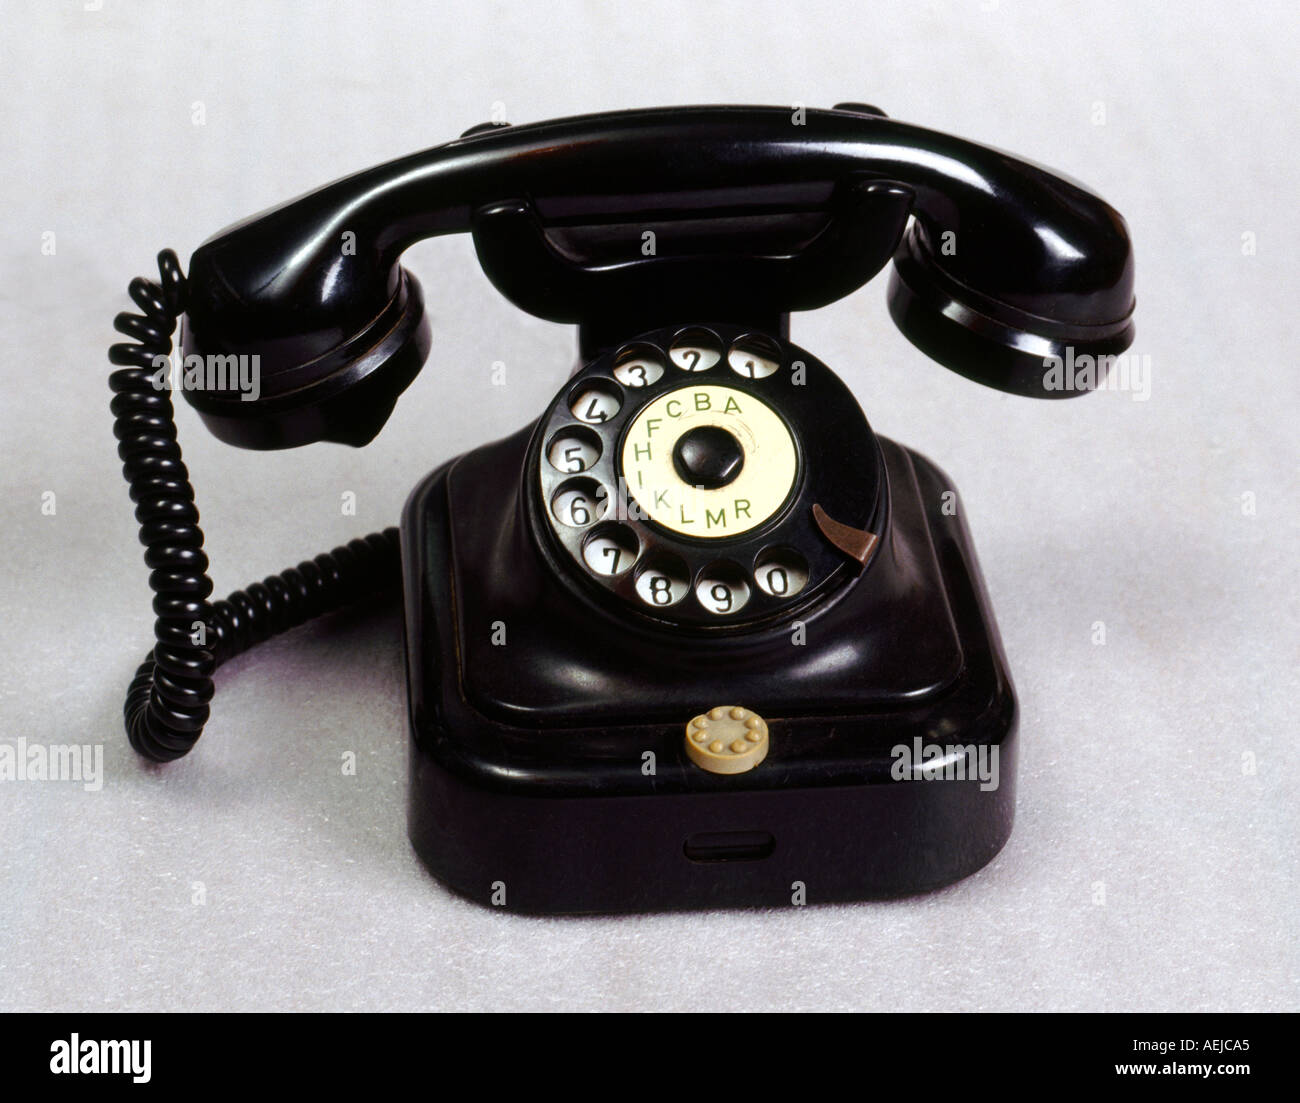 hight resolution of antique telephone older pastime old fashioned blower cordless phone communicate talking cut out cropped white background outline